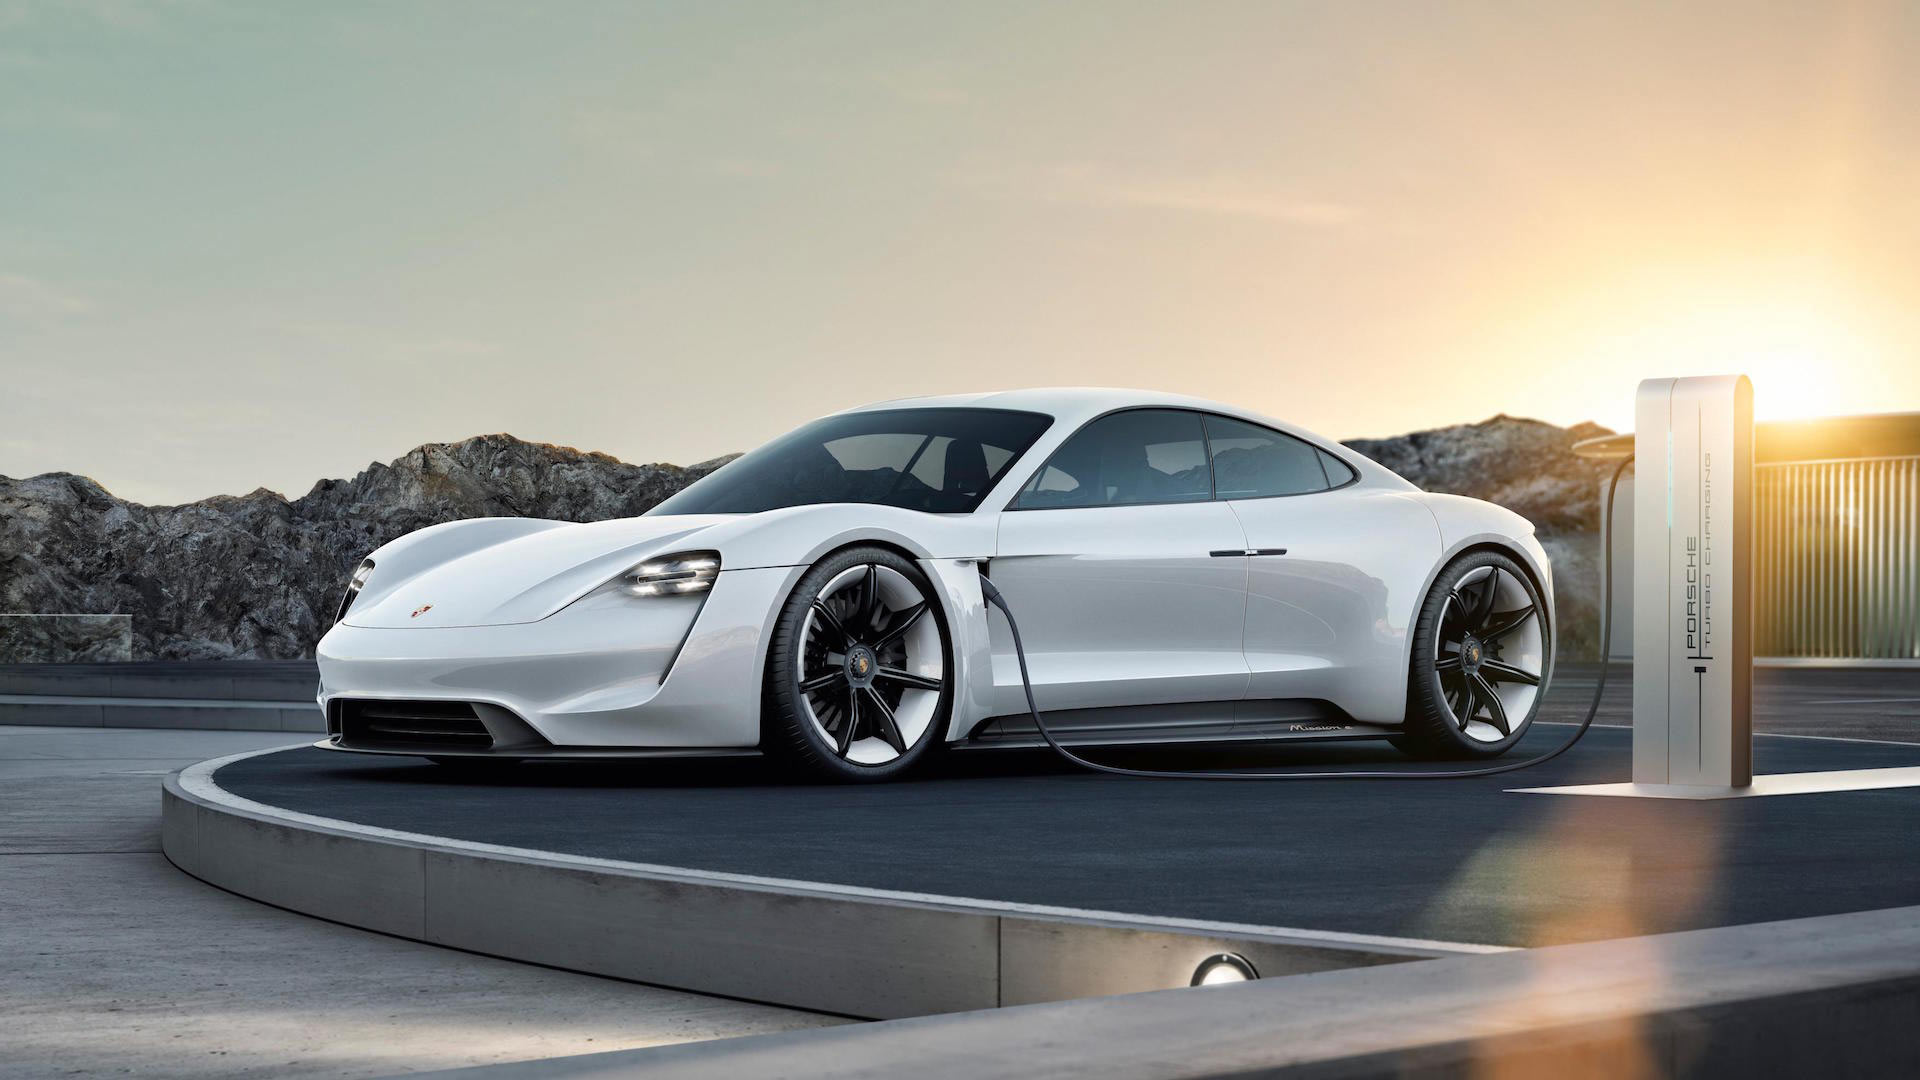 Porsche Taycan EV has 20,000 orders already - debuts in September